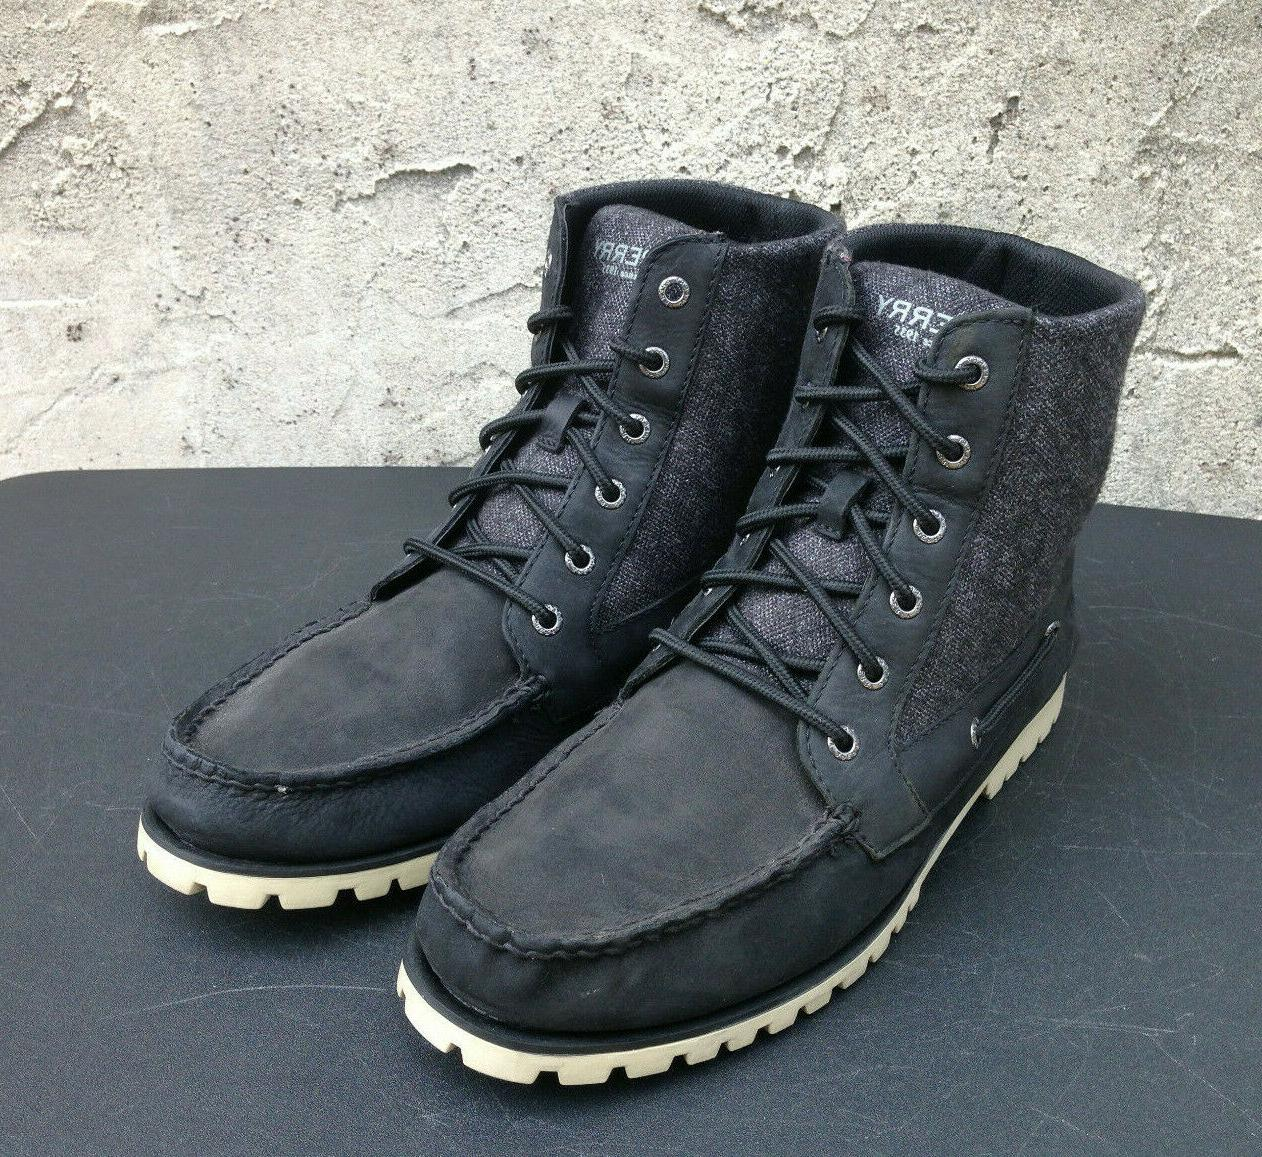 Sperry Black Leather/Canvas Up Boots Men's 10.5 ~NEW~